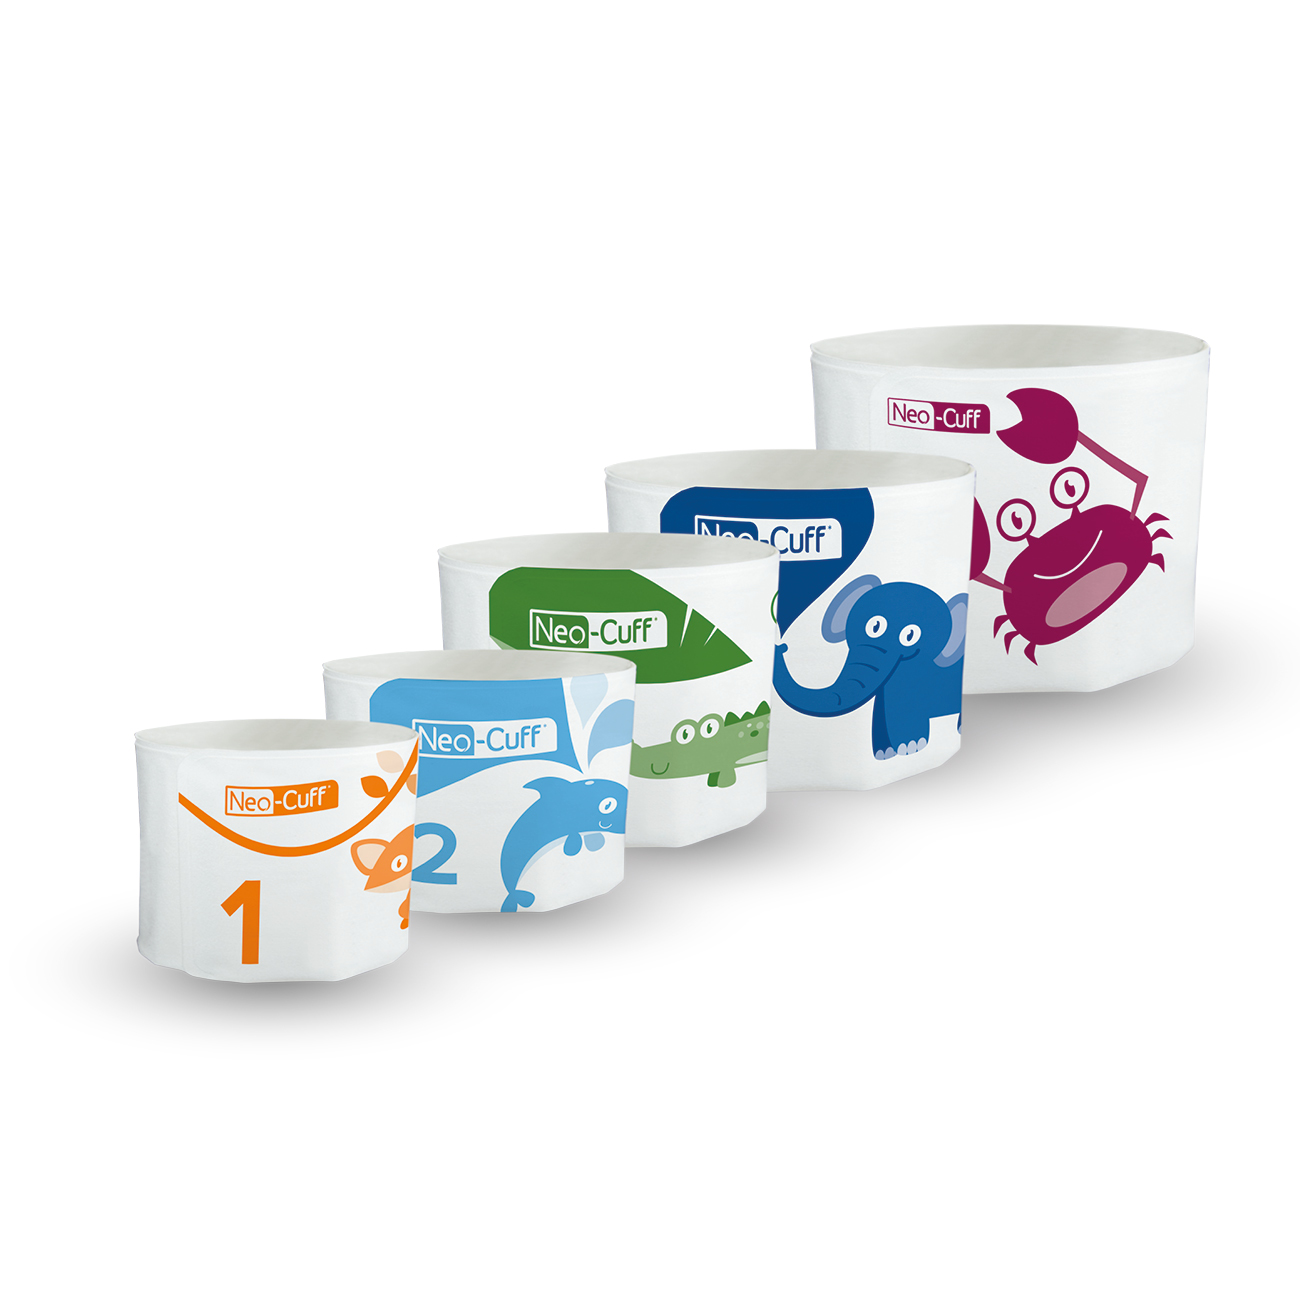 Neo-Cuff™ Single patient use BP cuffs for neonates